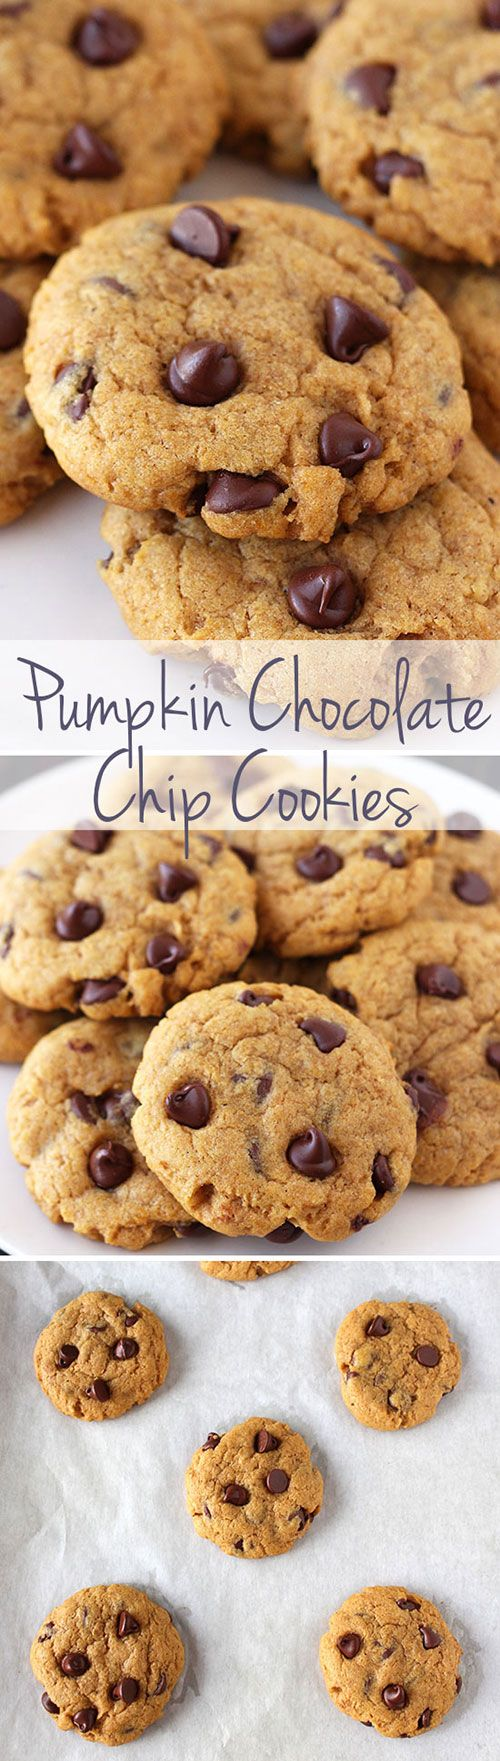 These Pumpkin Chocolate Chip Cookies are soft yet chewy, not at all cakey like most pumpkin cookies! These are loaded with spices and are a HIT every fall.